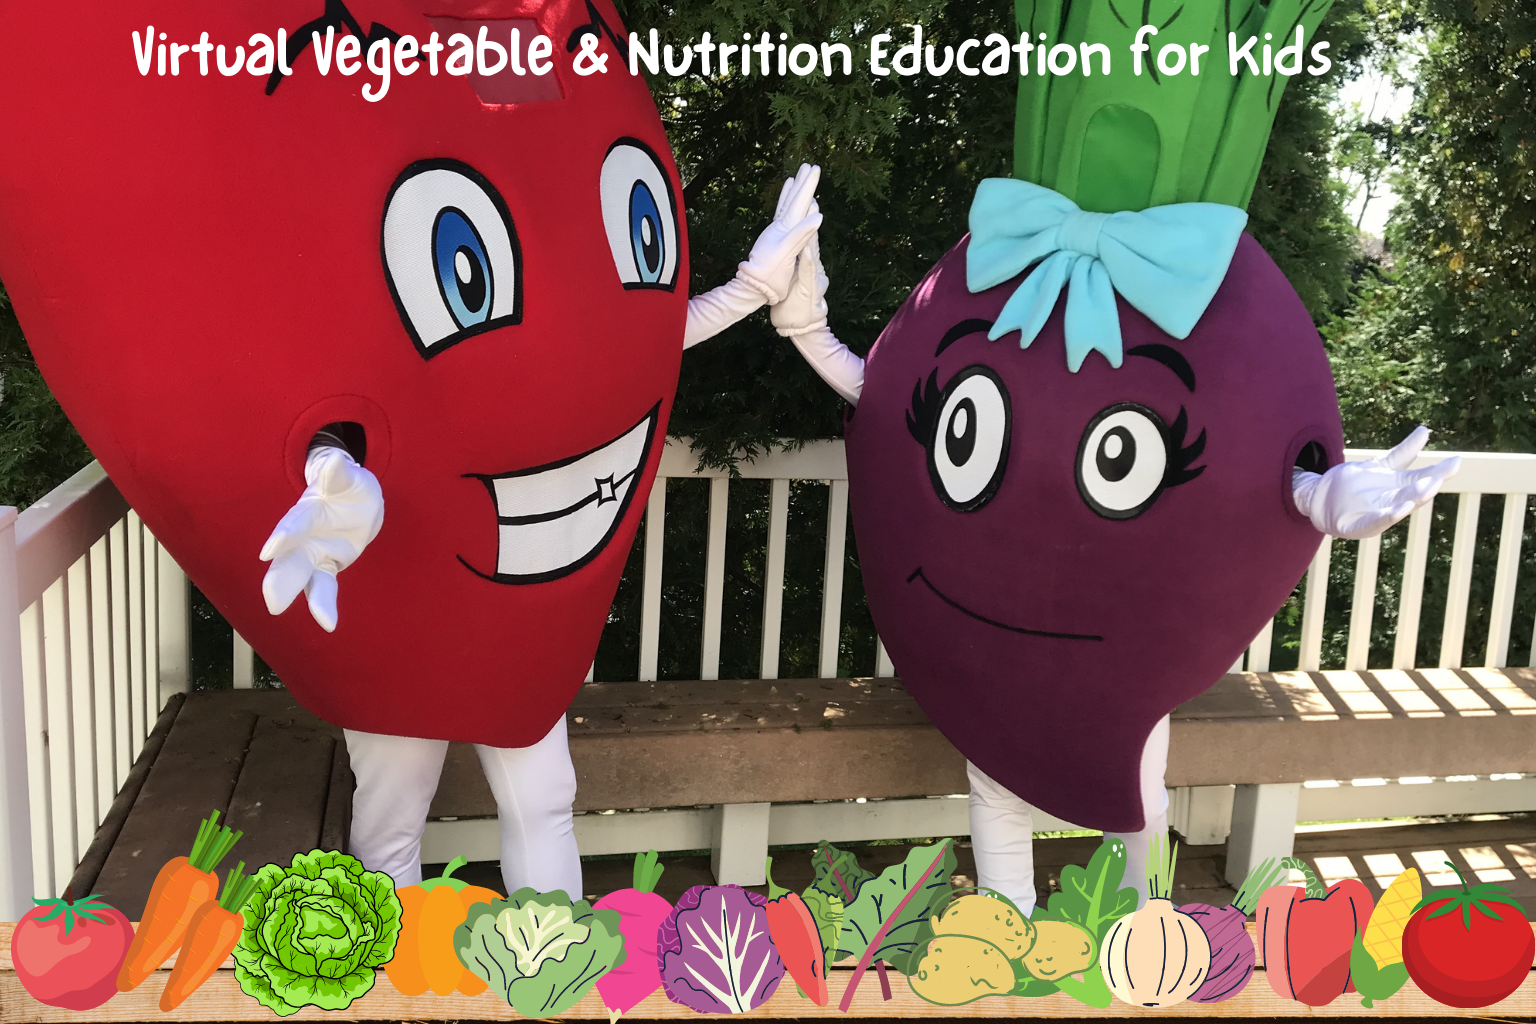 Virtual Vegetable and Nutrition Education for Kids